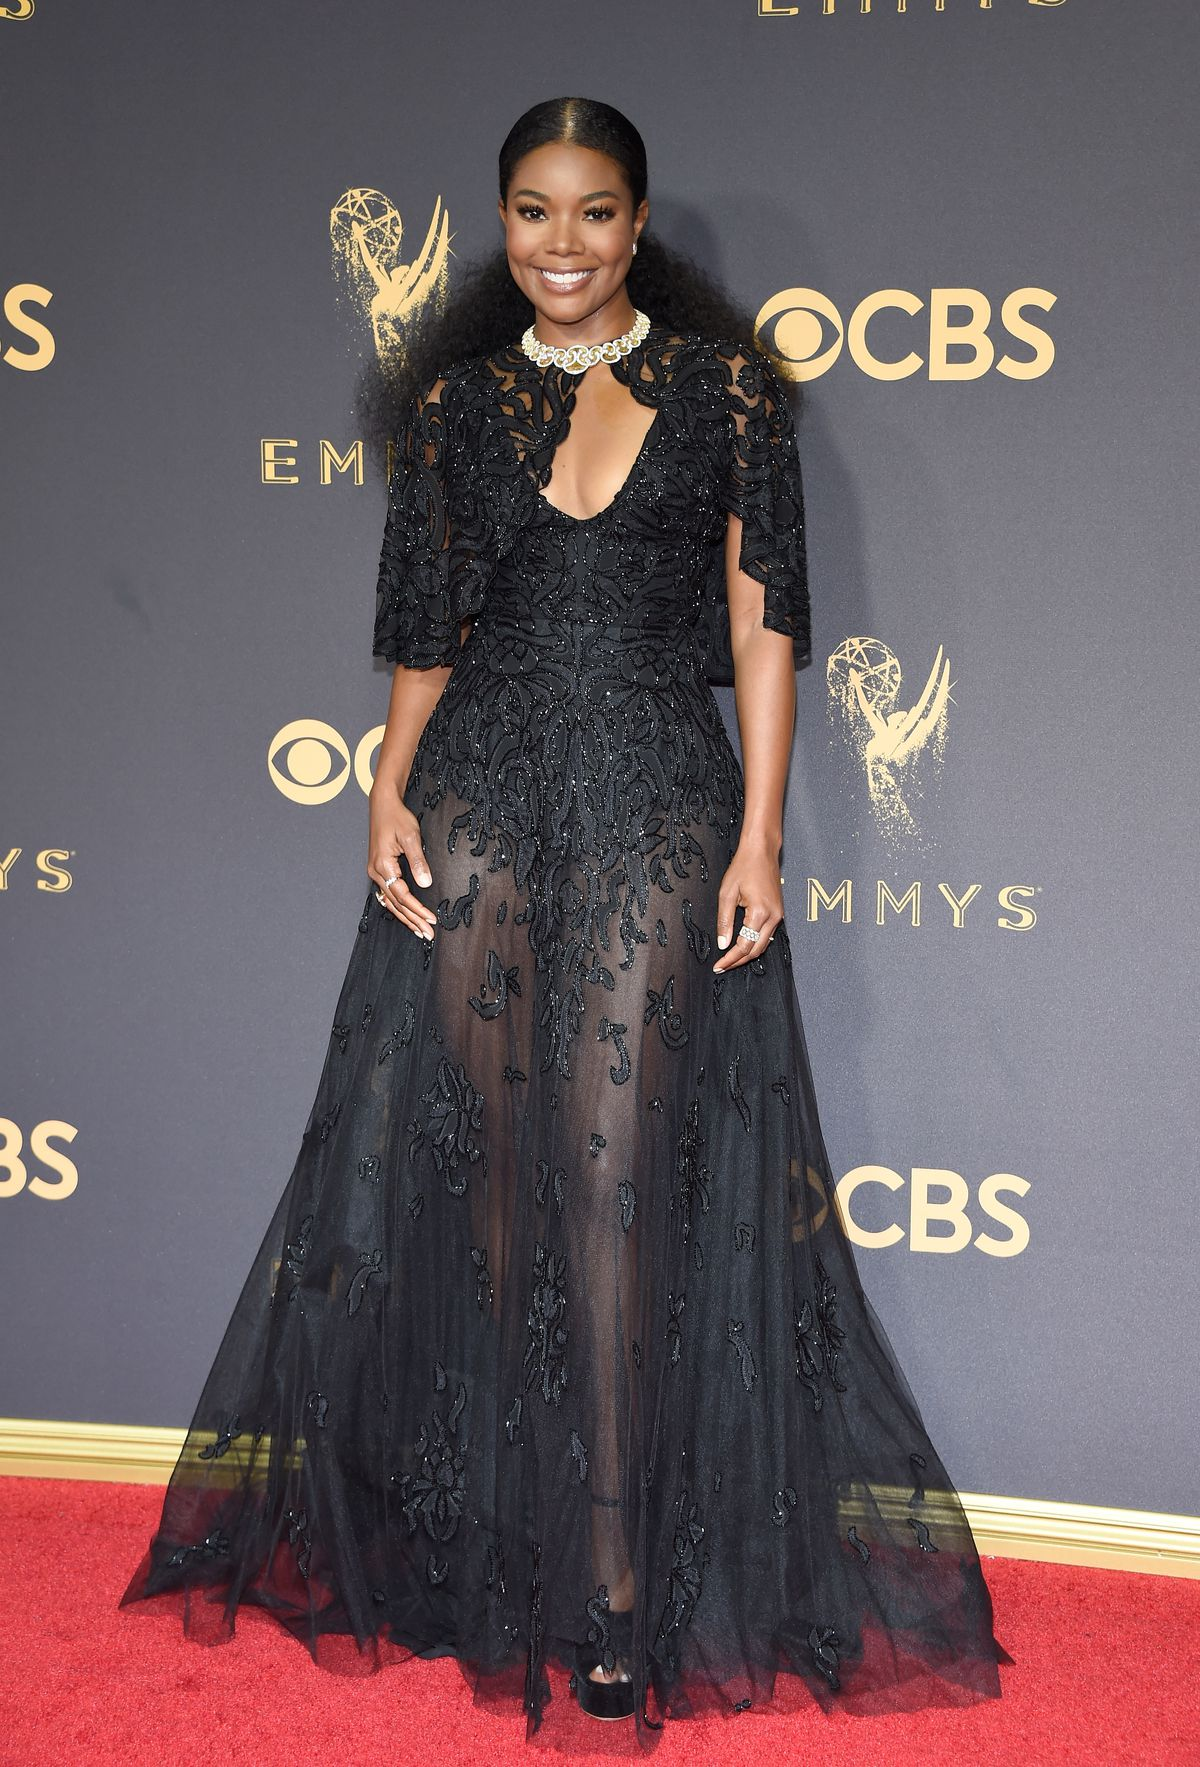 Gabrielle Union in Zuhair Murad at the 2017 Emmys.